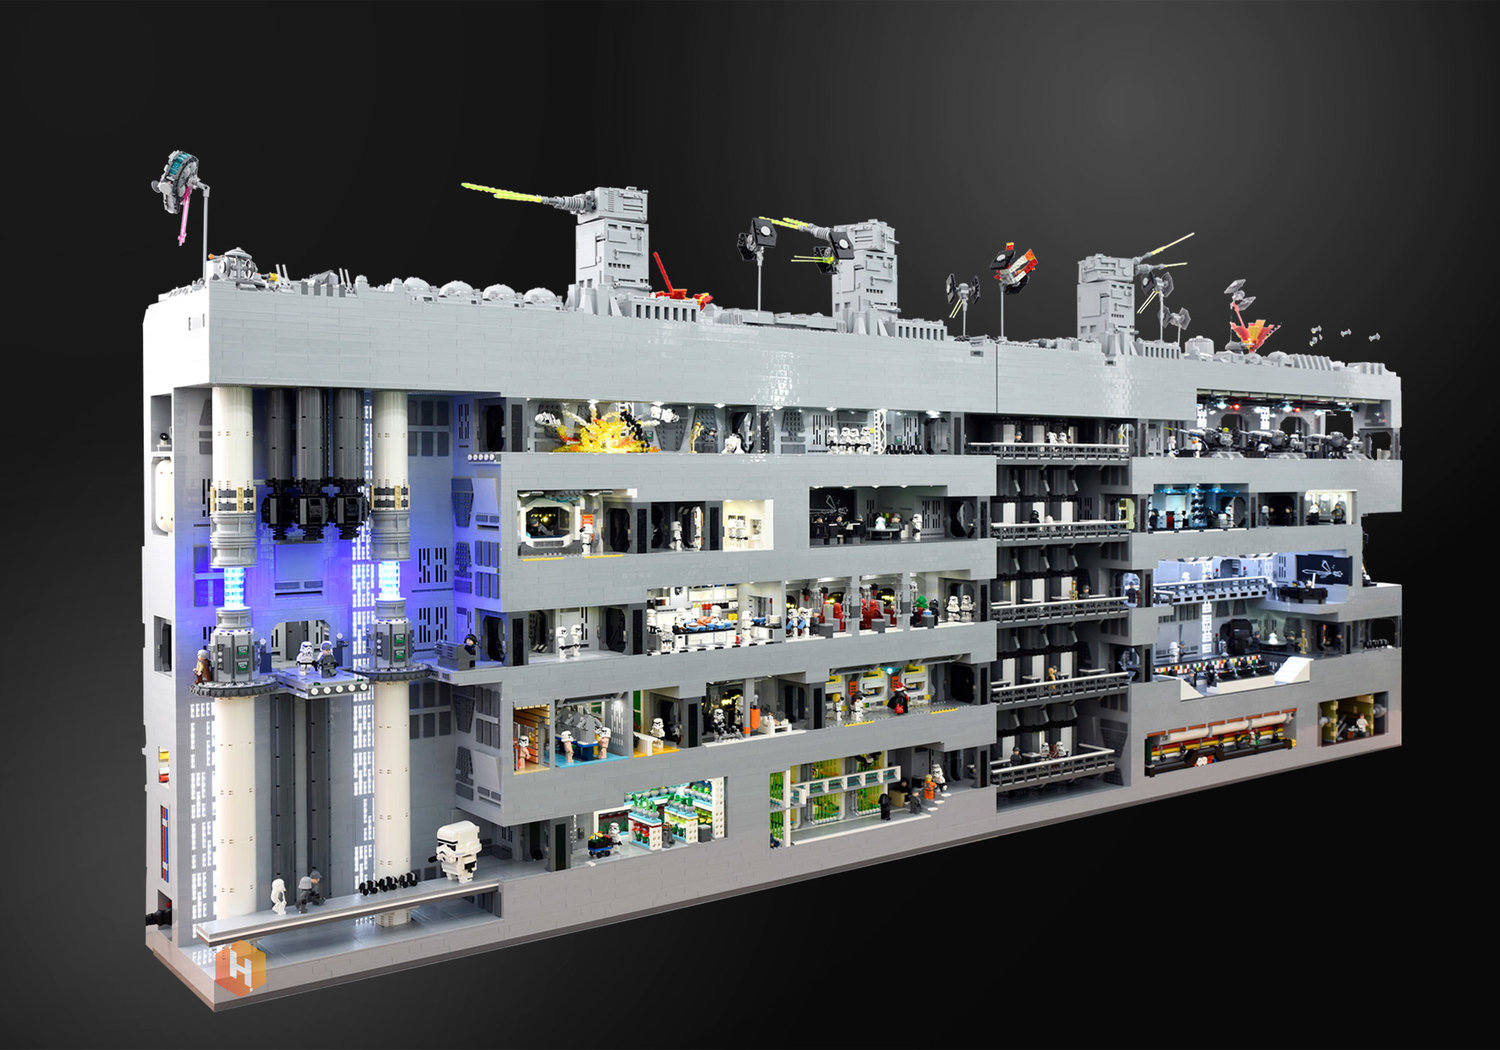 super-detailed-lego-diorama-of-the-star-wars-death-star-trench-run-stays-on-target3